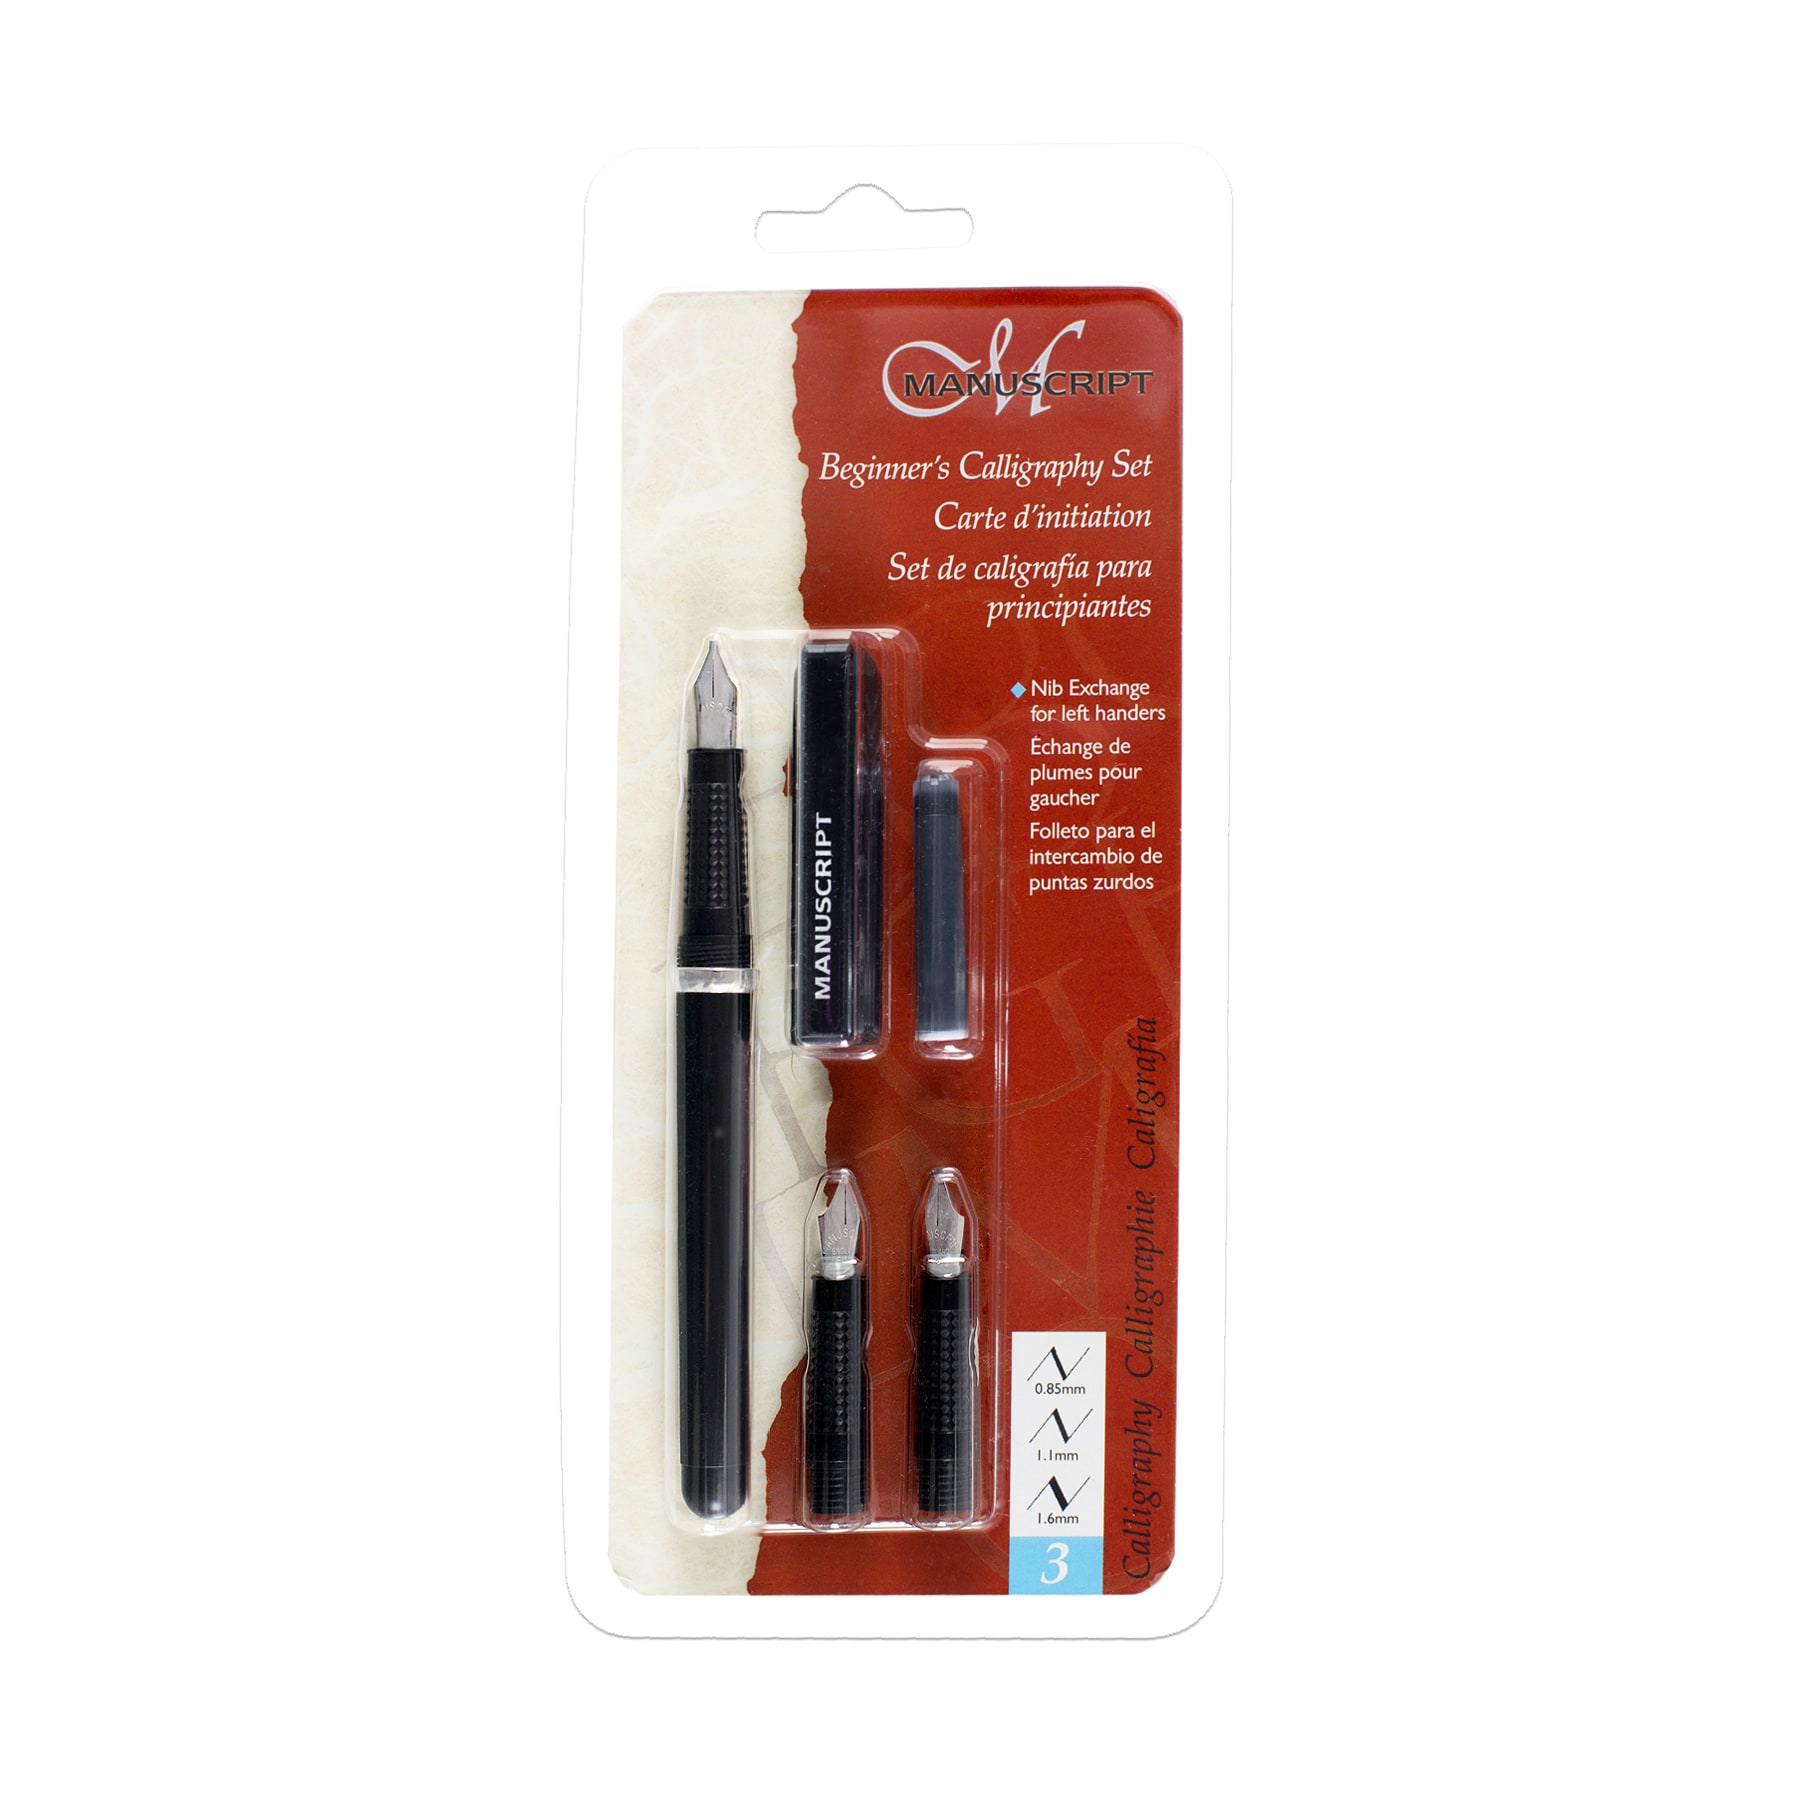 Manuscript Beginners Calligraphy Set Black Calligraphy